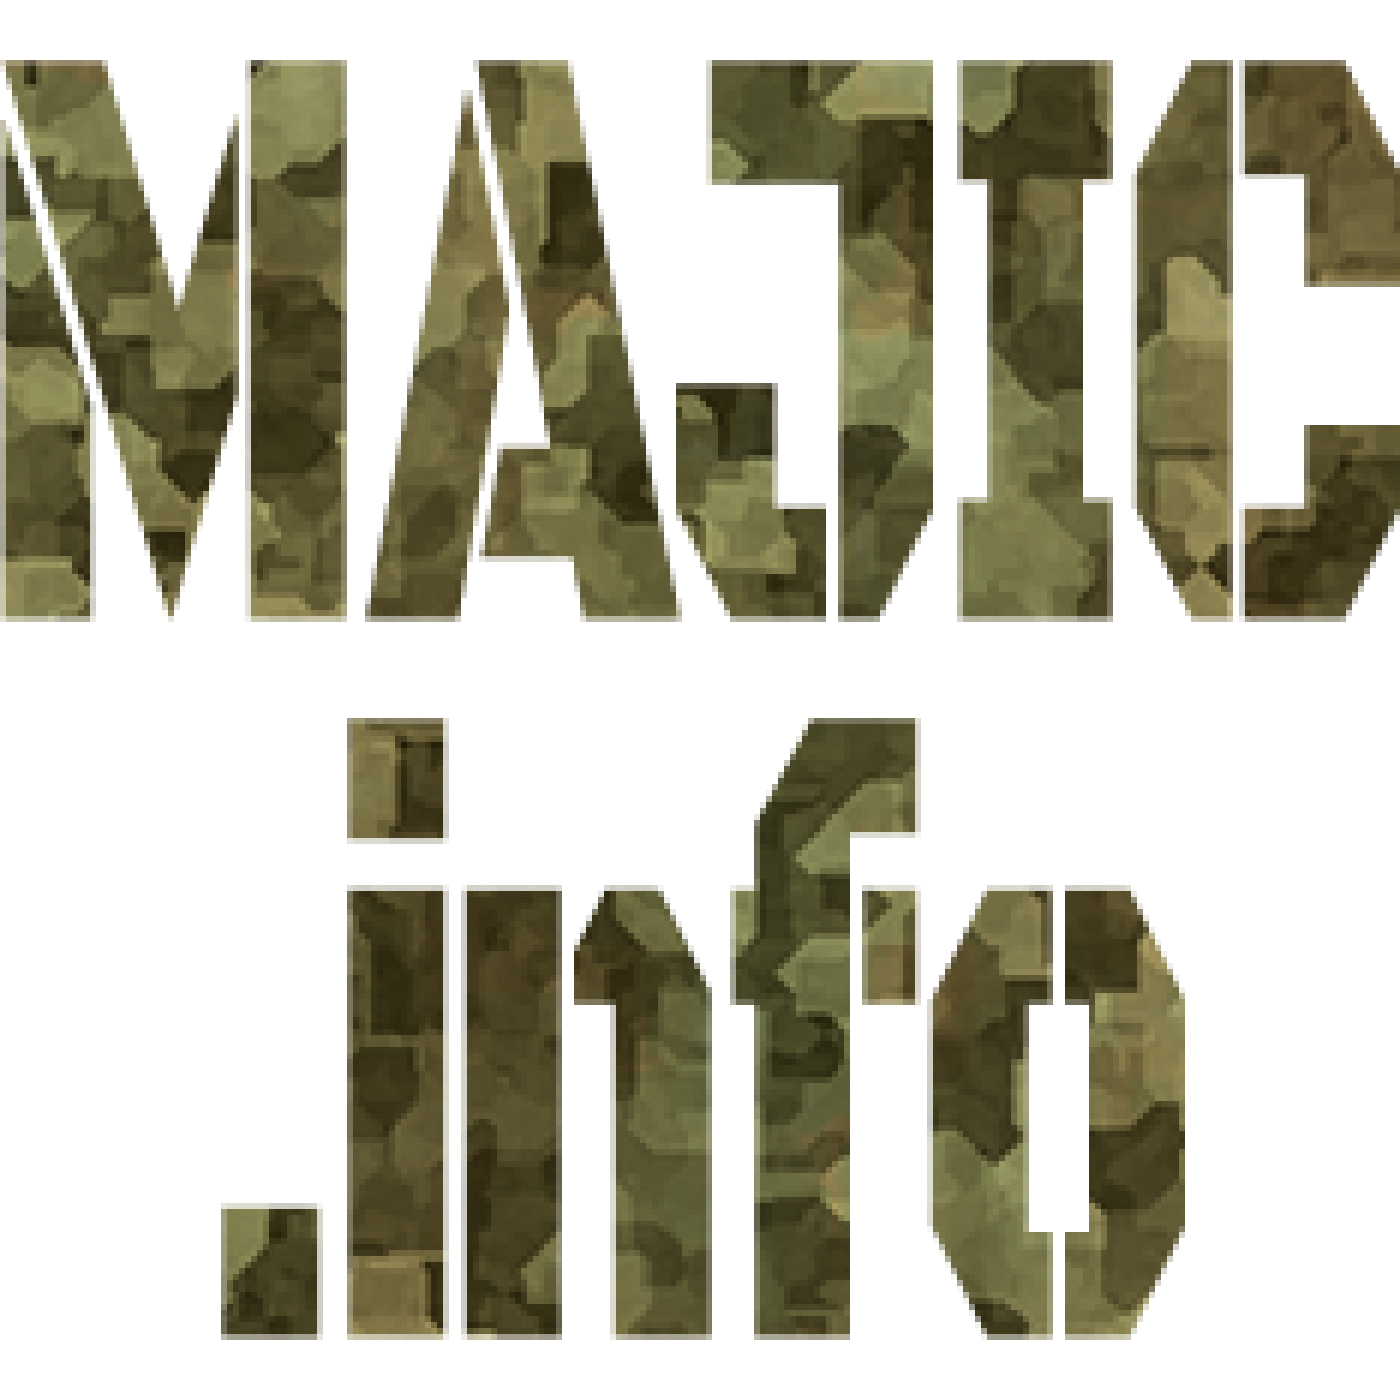 MAJIC.info logo (Military-Alien Joint Industrial Complex information)